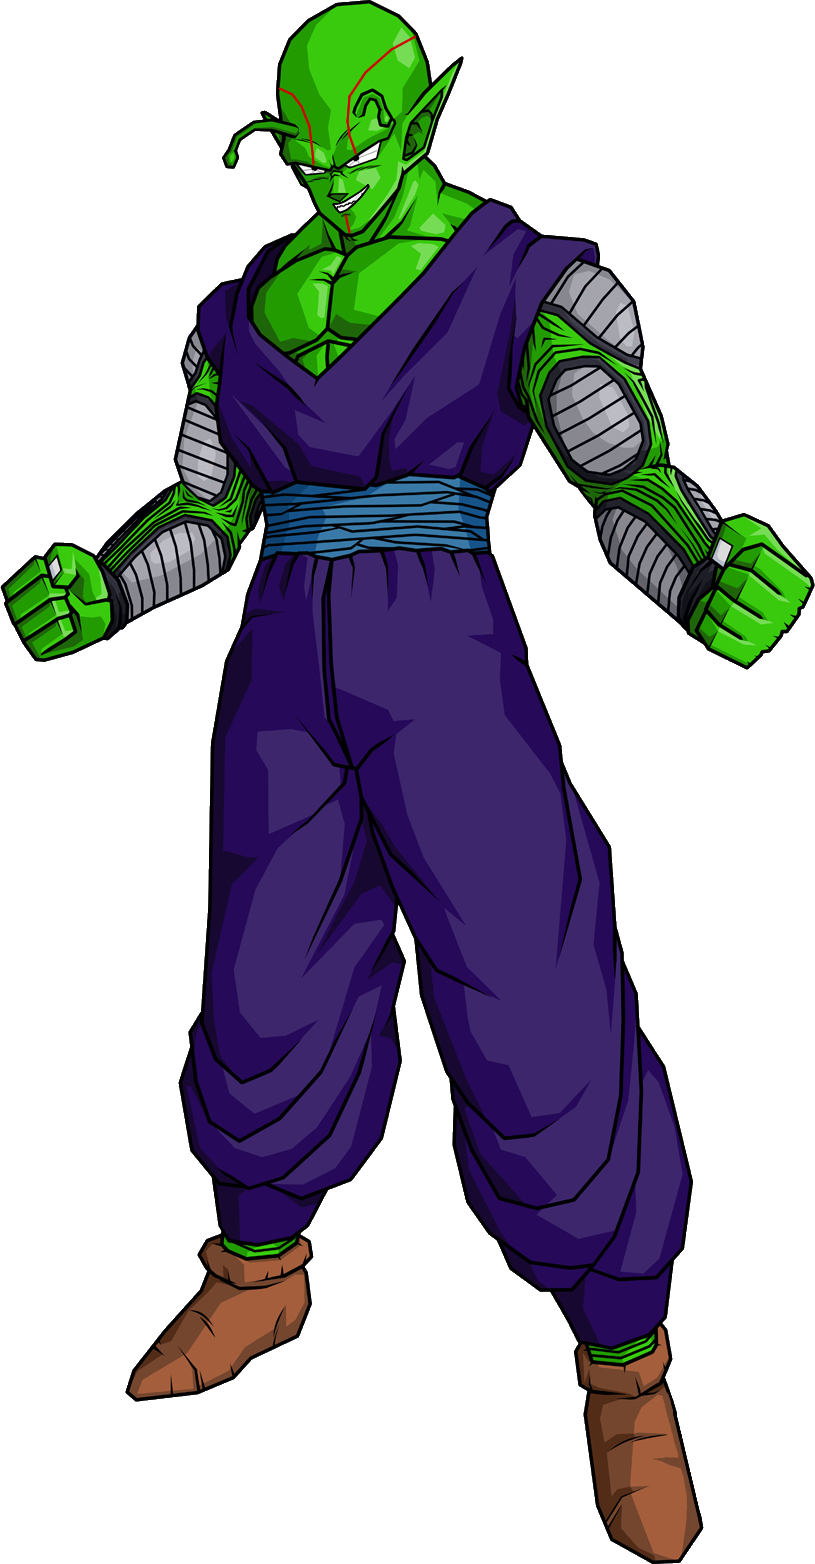 Piccolo dbz png. Image baby by db